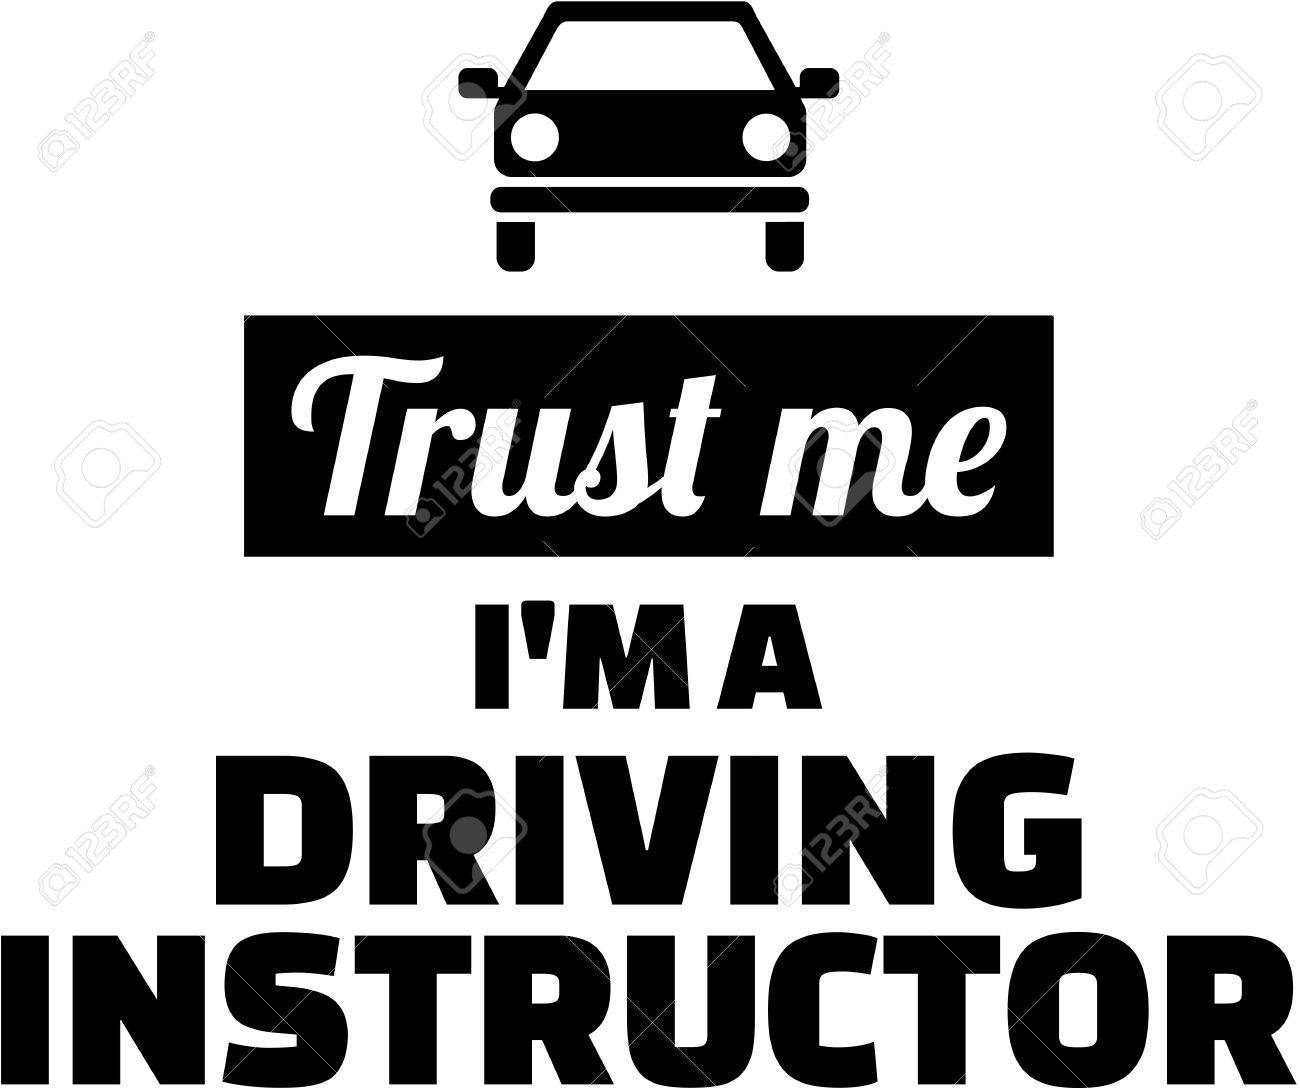 Driving Instructor Stock Illustrations – 389 Driving Instructor Stock  Illustrations, Vectors & Clipart - Dreamstime